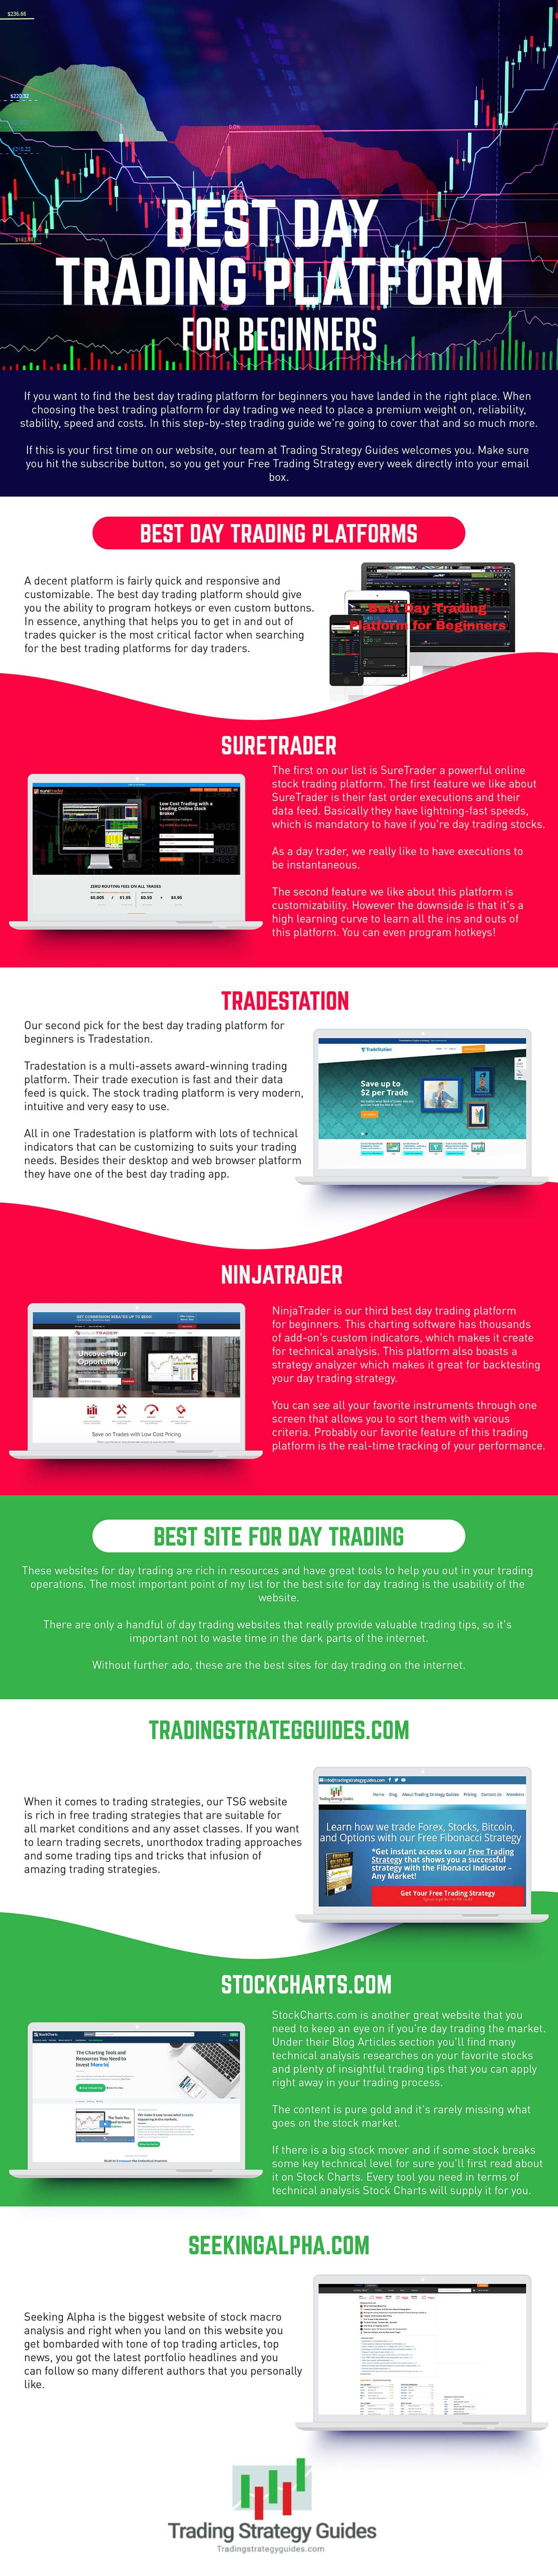 Best Trading Platform For Day Traders Day Trading Day Trader Trading